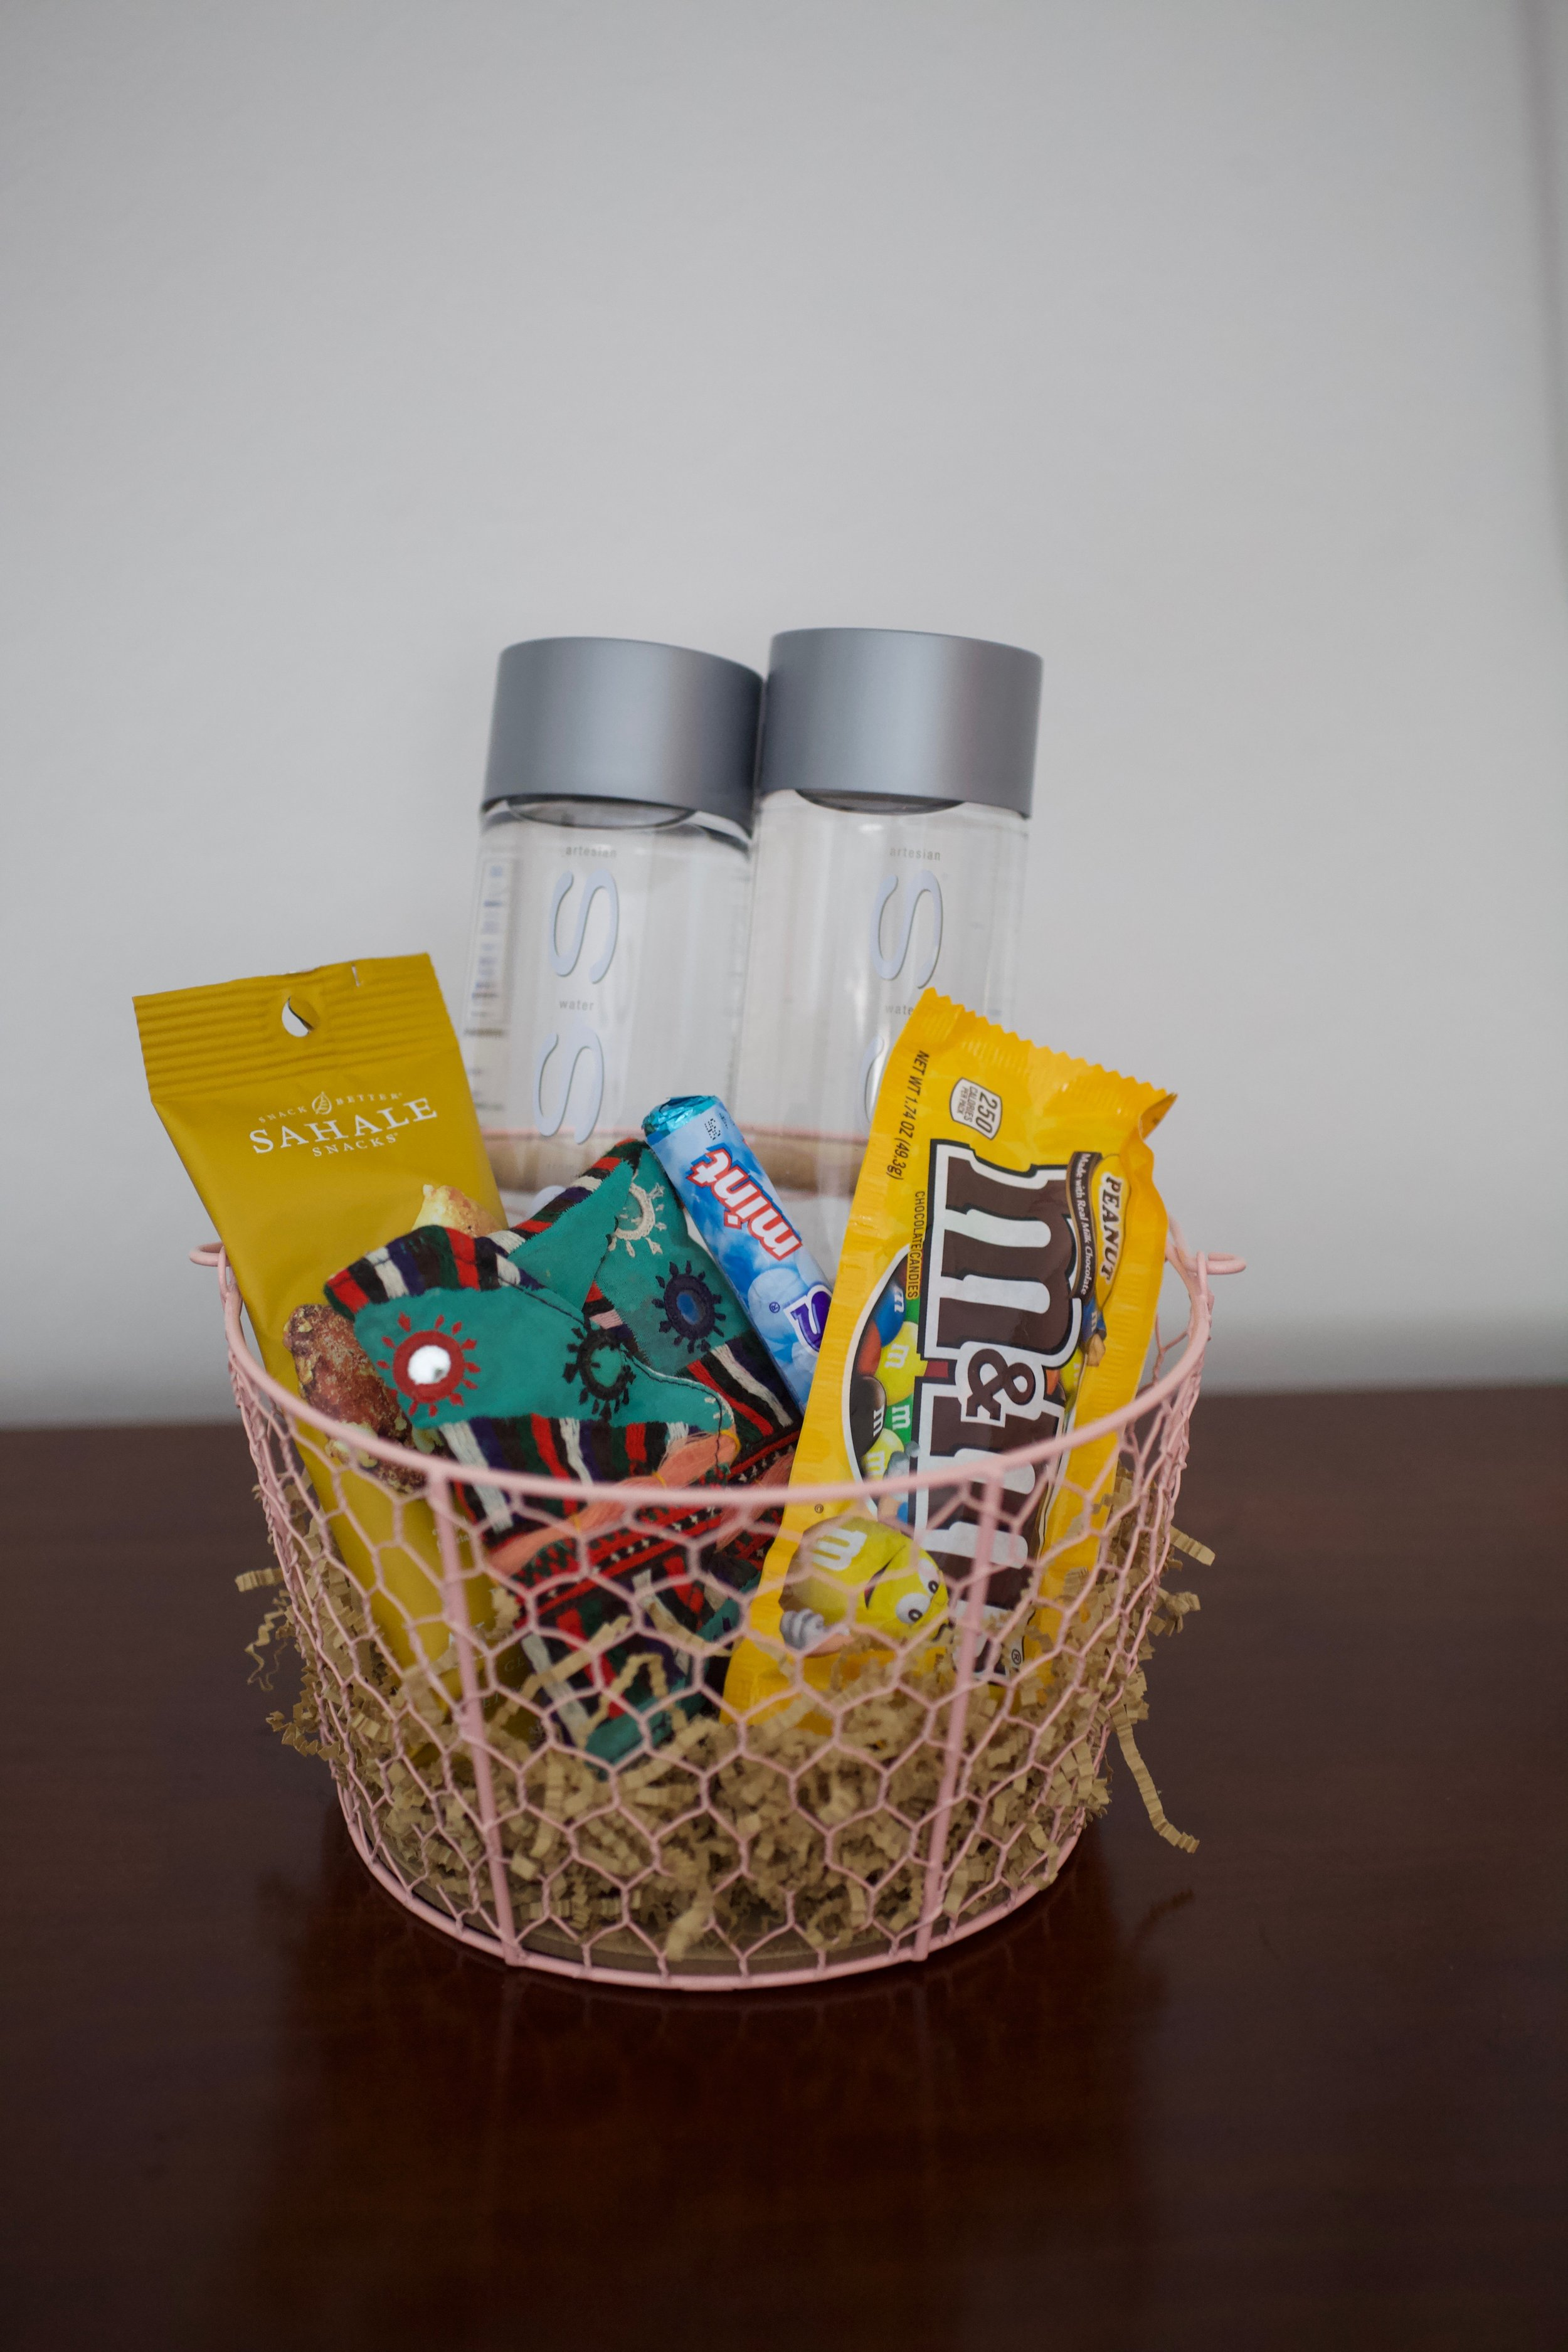 The Guest Basket is a Poor Man's Mini Fridge: I love to personalize it to the guest that's coming!